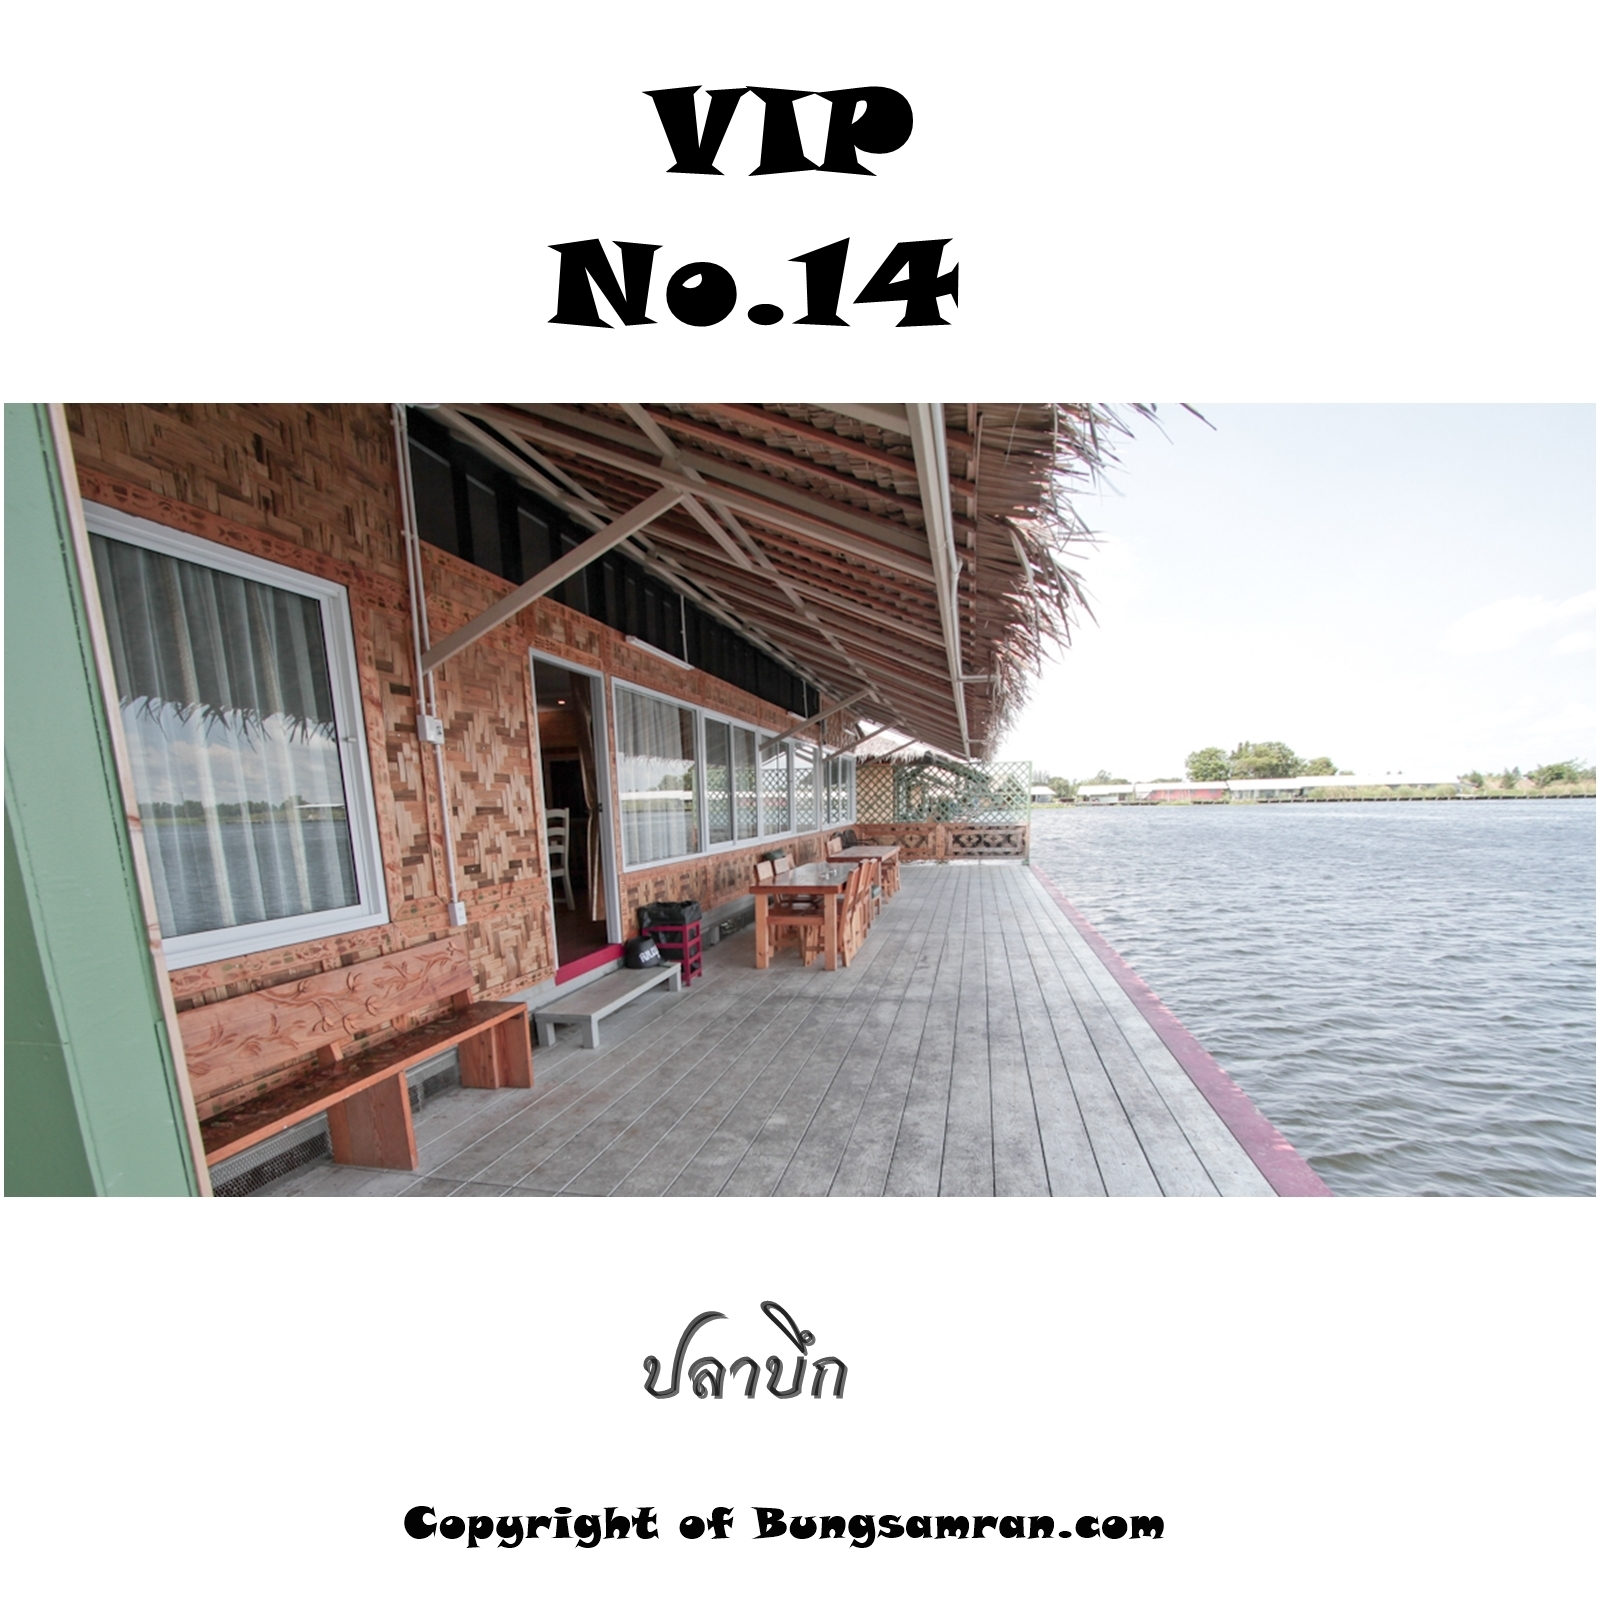 Bungsamran Resort VIP No.14